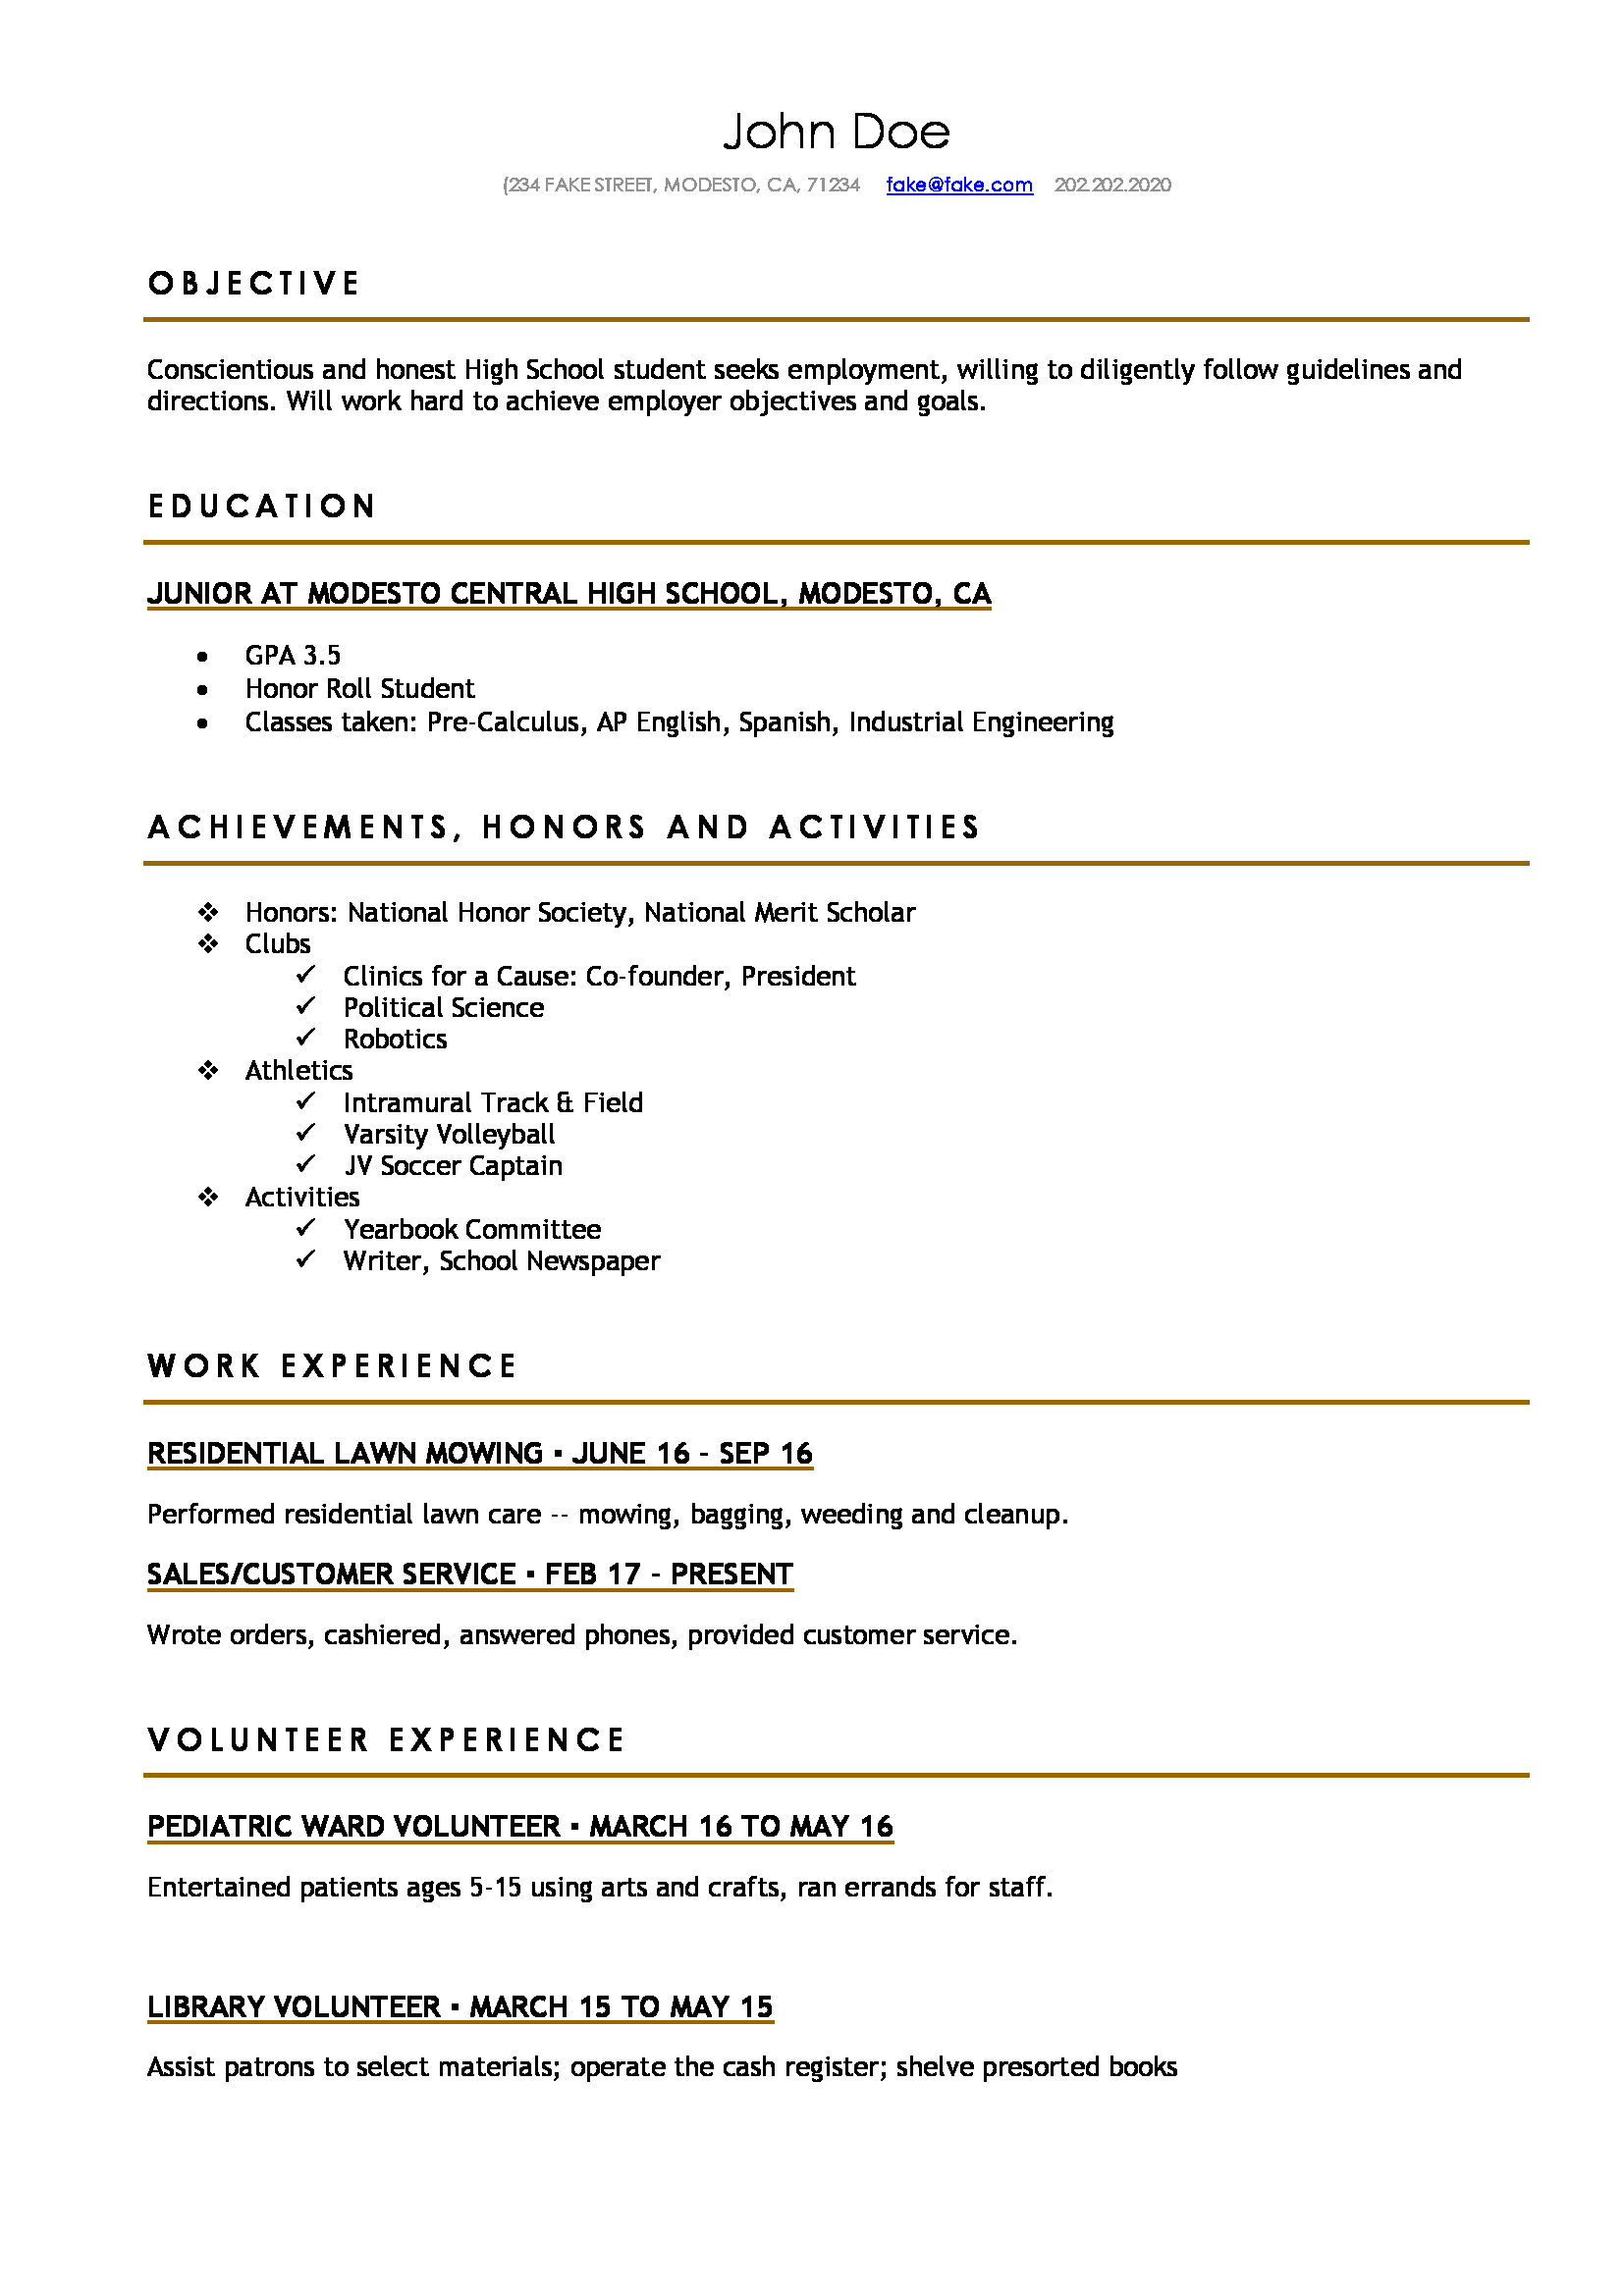 resume for highschool students high school resume resumes for high school students 24349 | 72a45a1e fba6 4eed 9dae 56718781d6b8